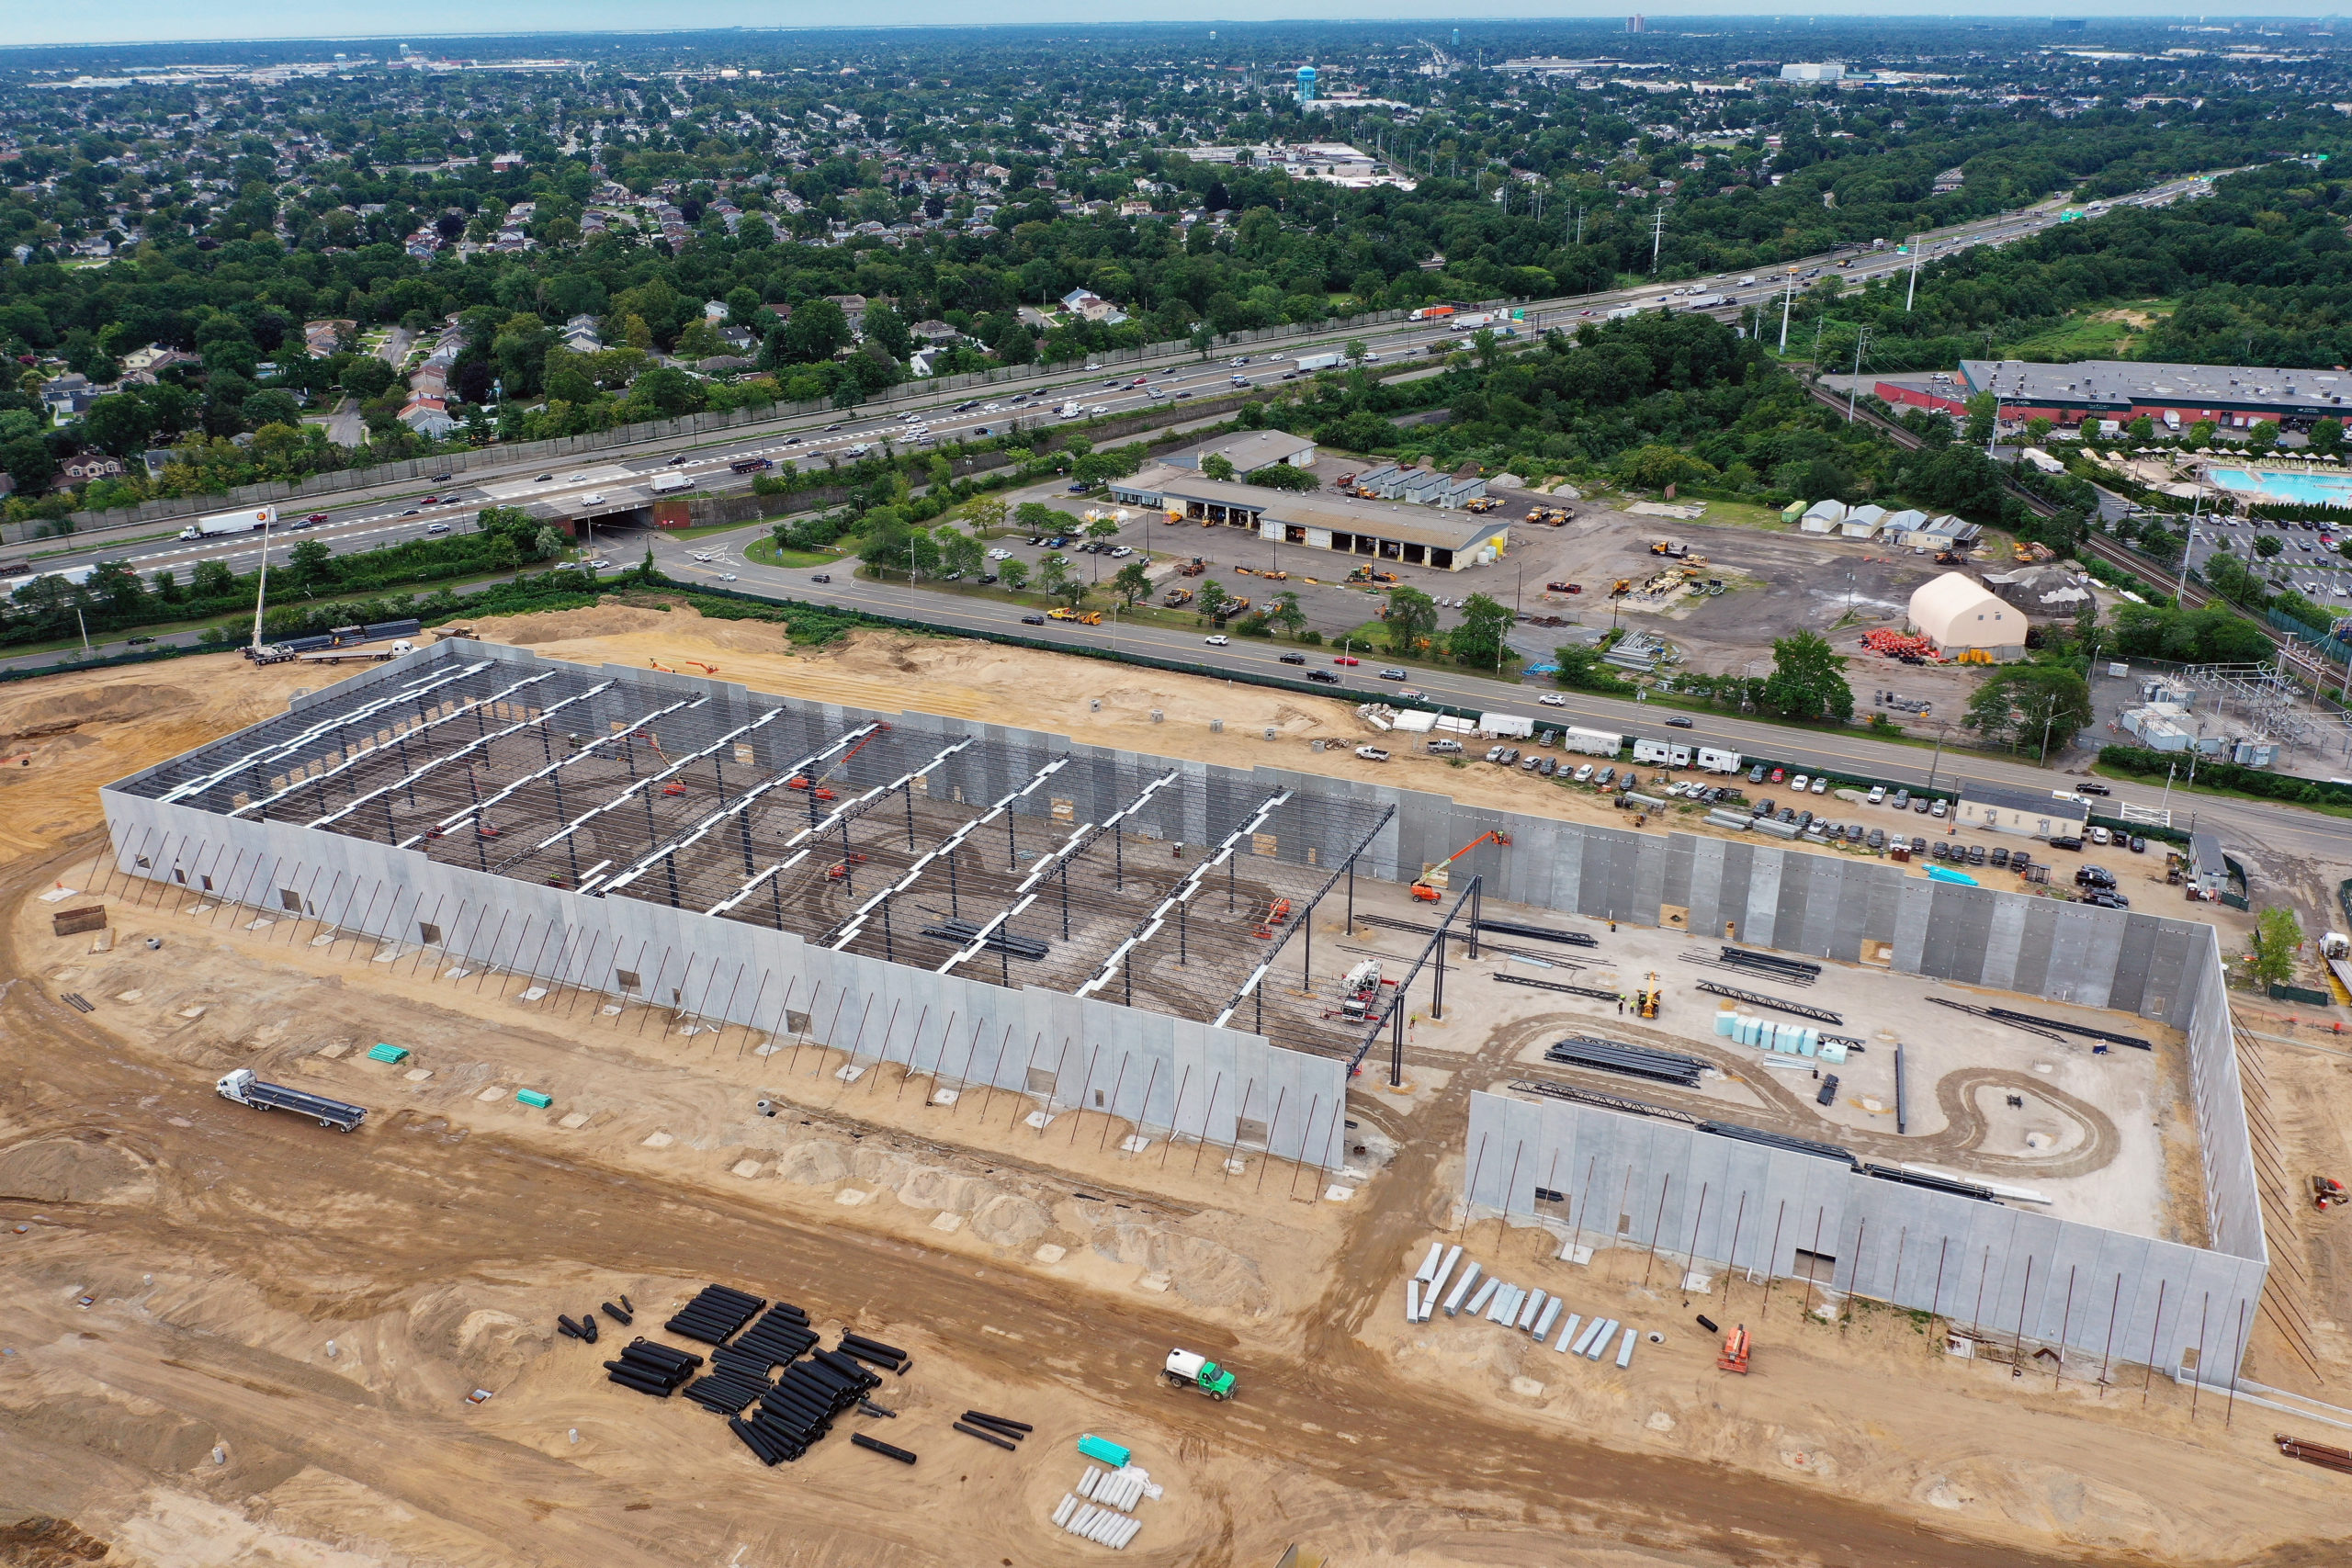 An aerial photo shows construction on an Amazon warehouse on Aug. 20 in Syosset, New York. (Bruce Bennett/Getty Images)